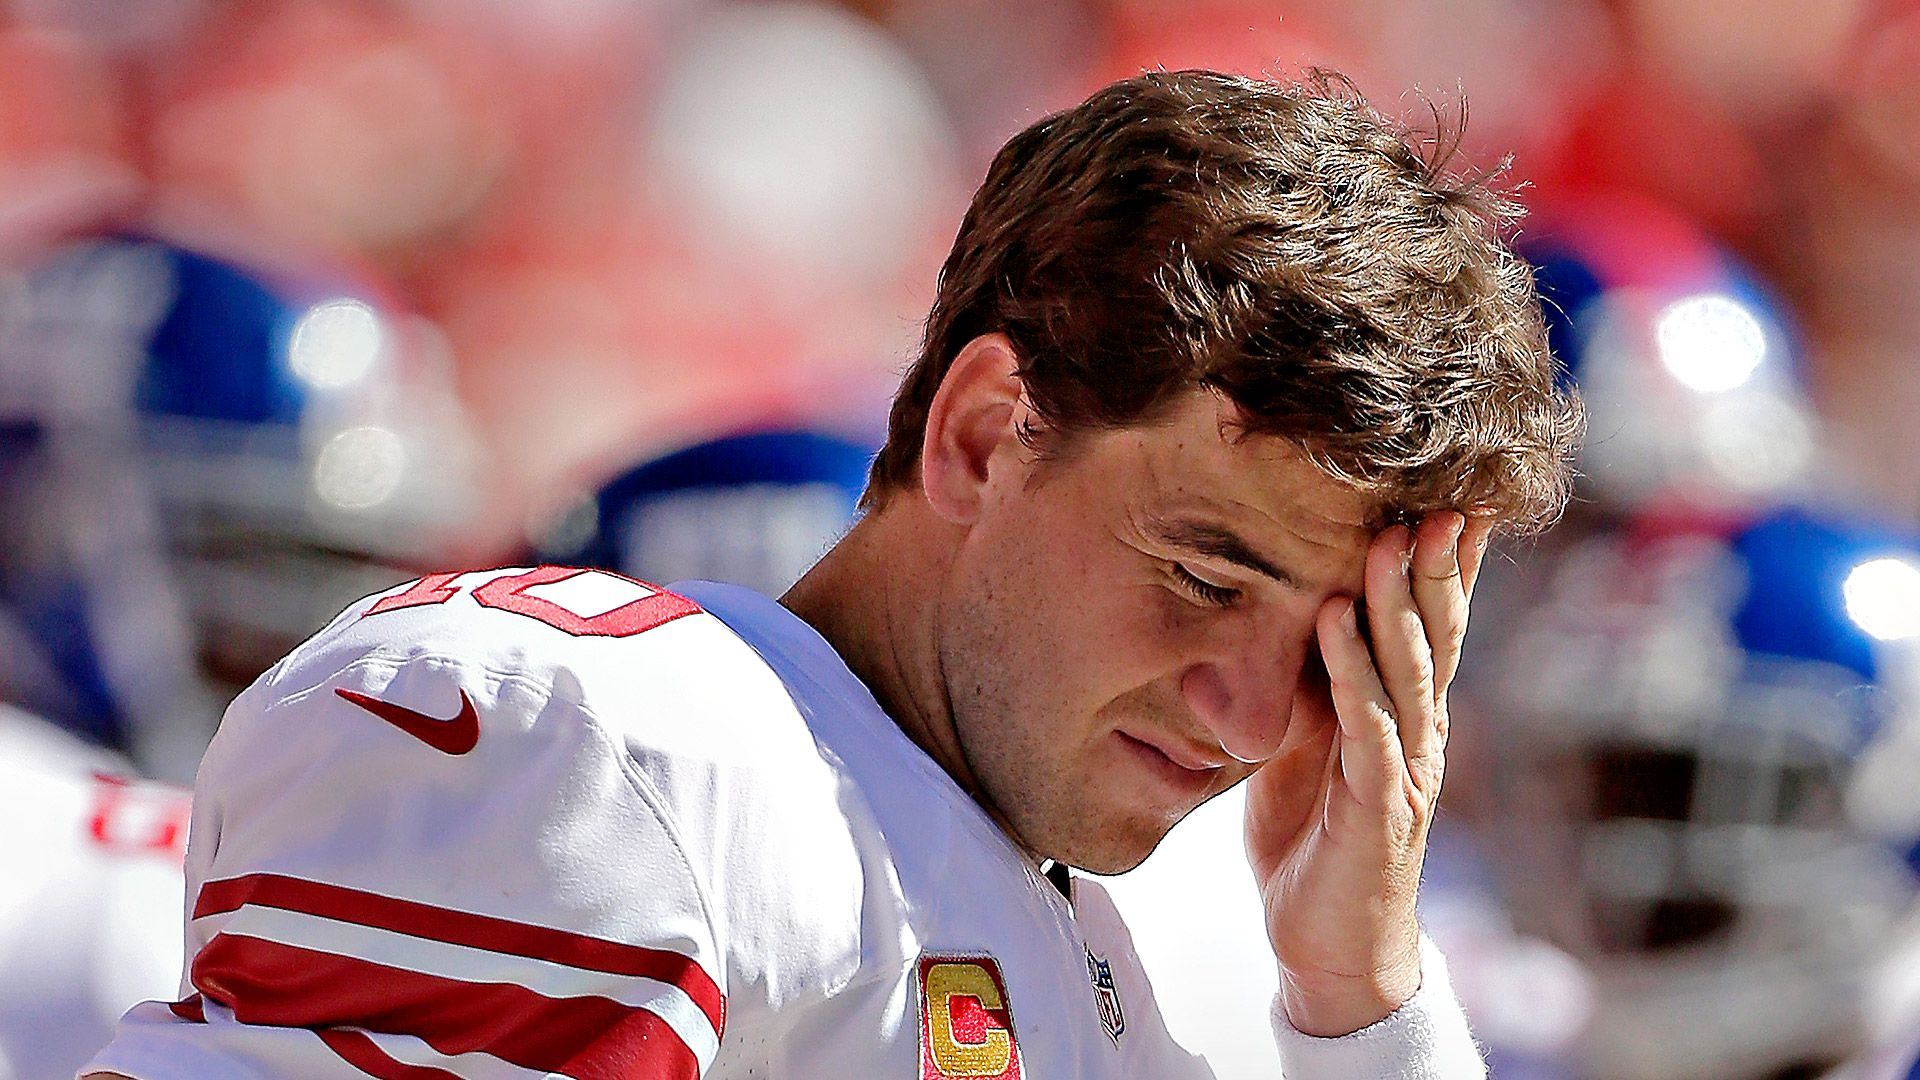 New York Giants to stay with Eli Manning as starting quarterback